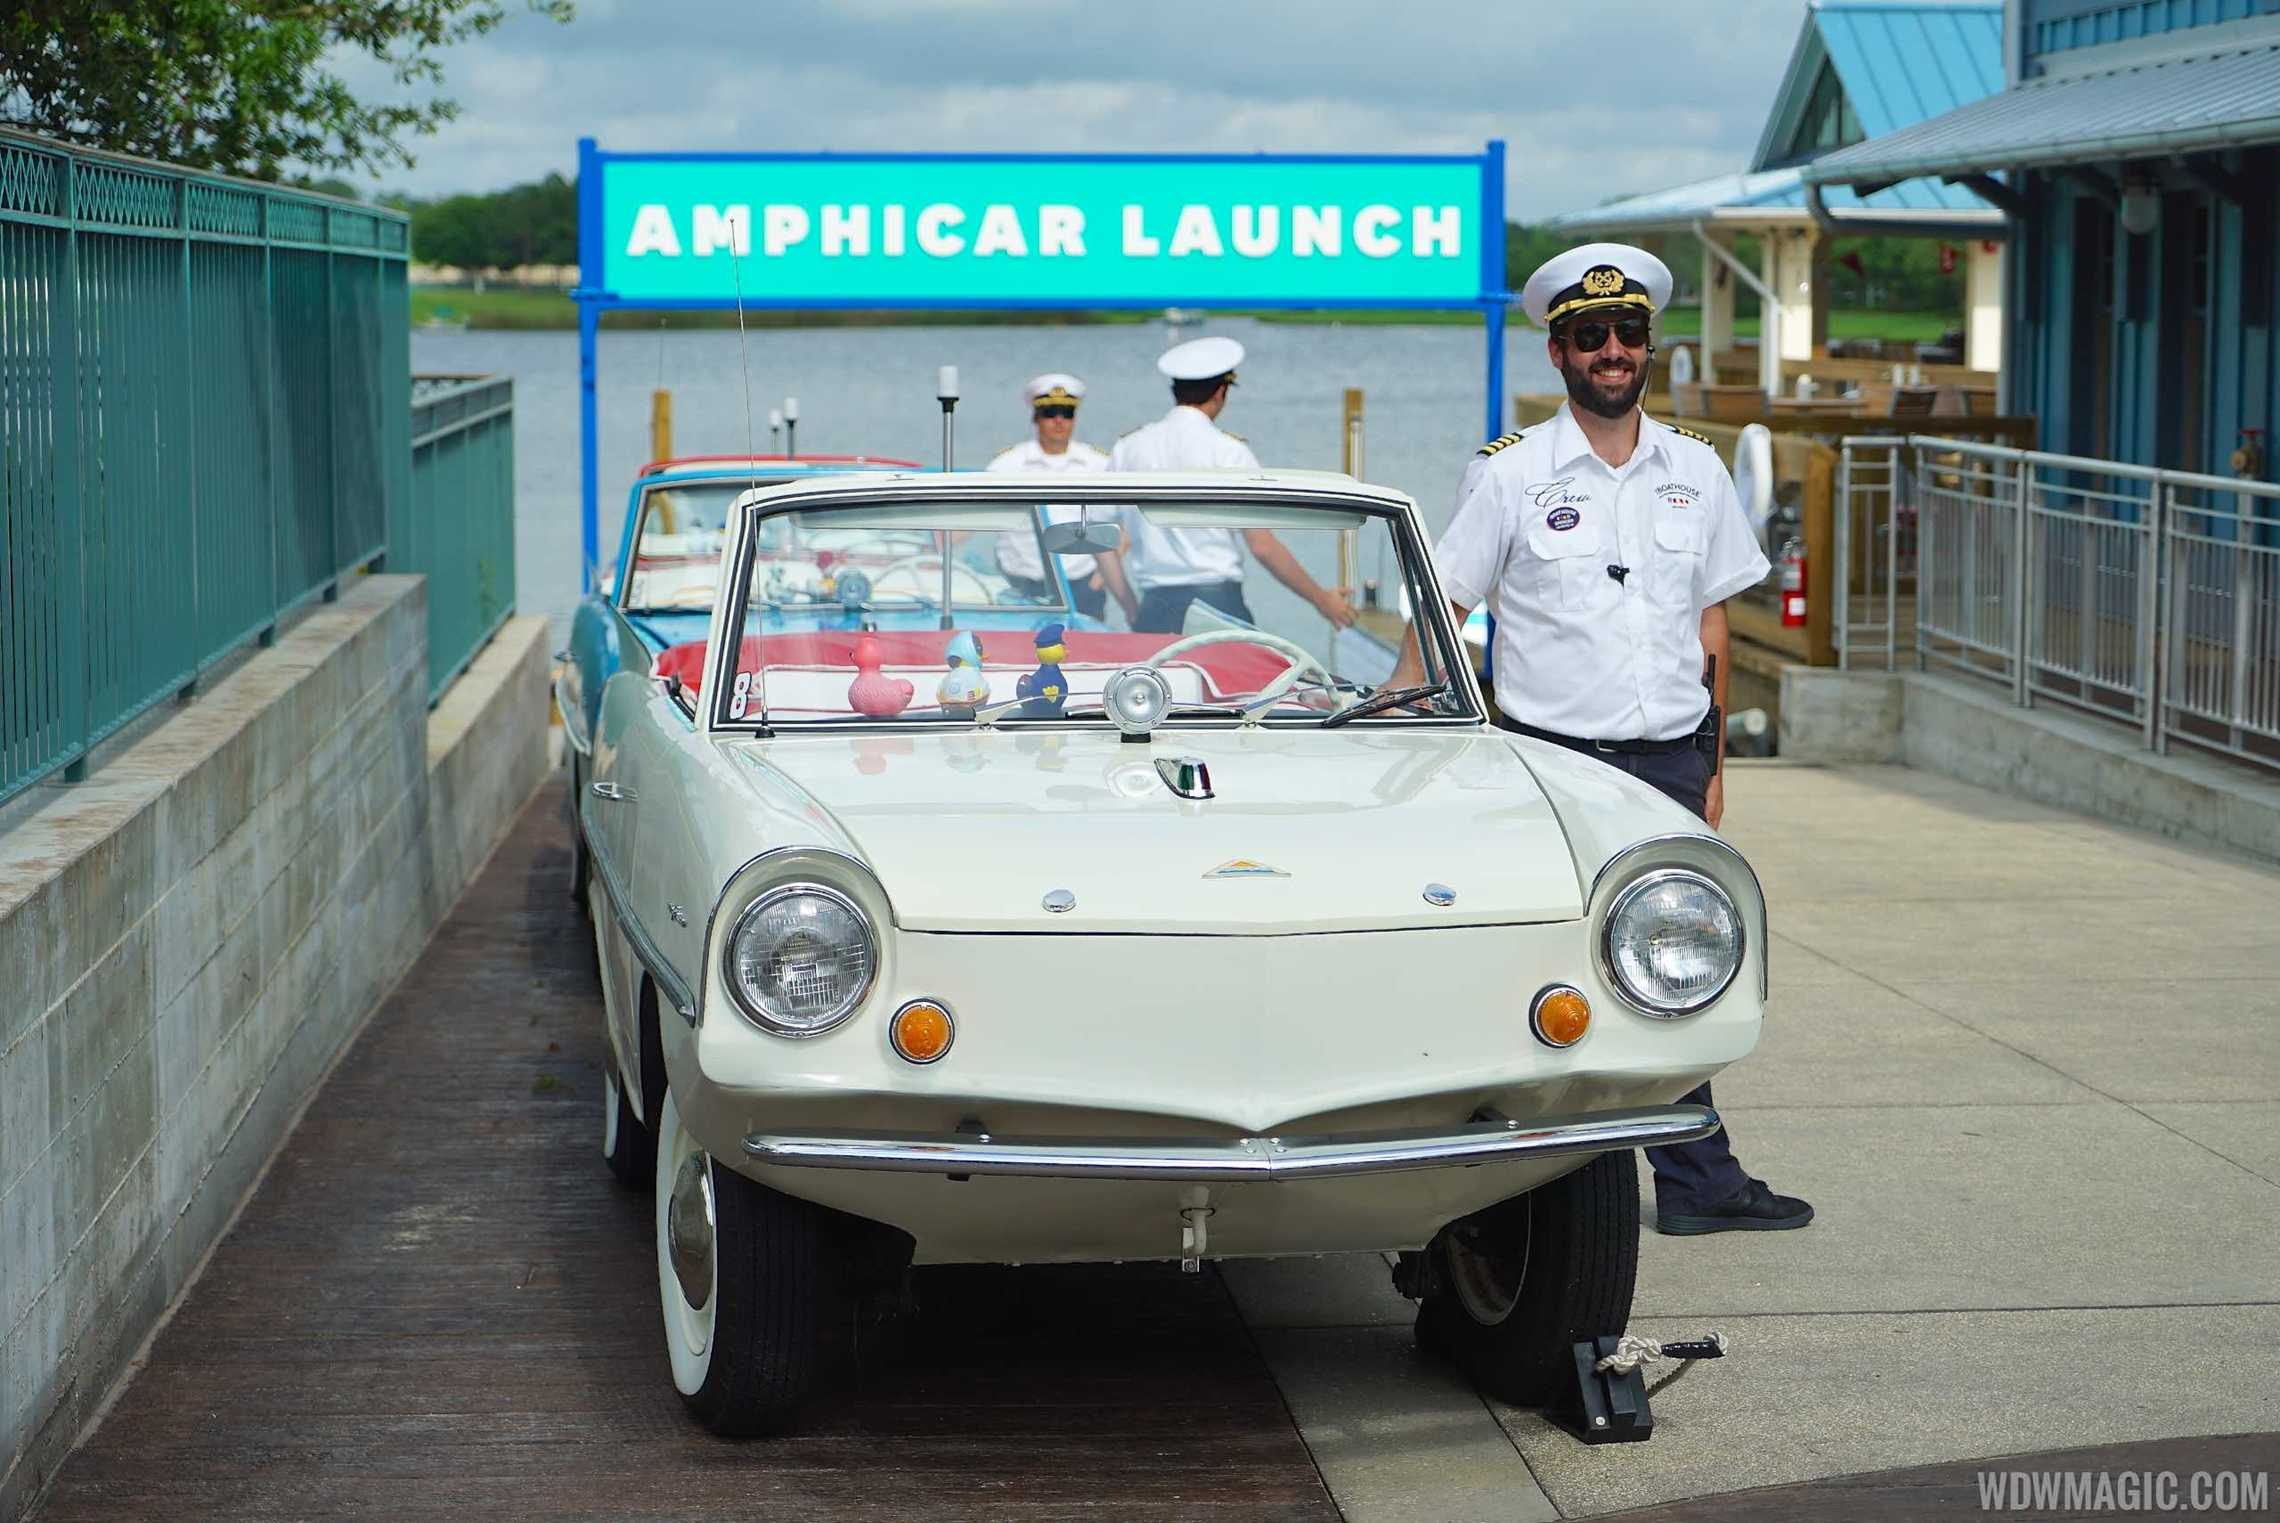 Amphicar at The BOATHOUSE